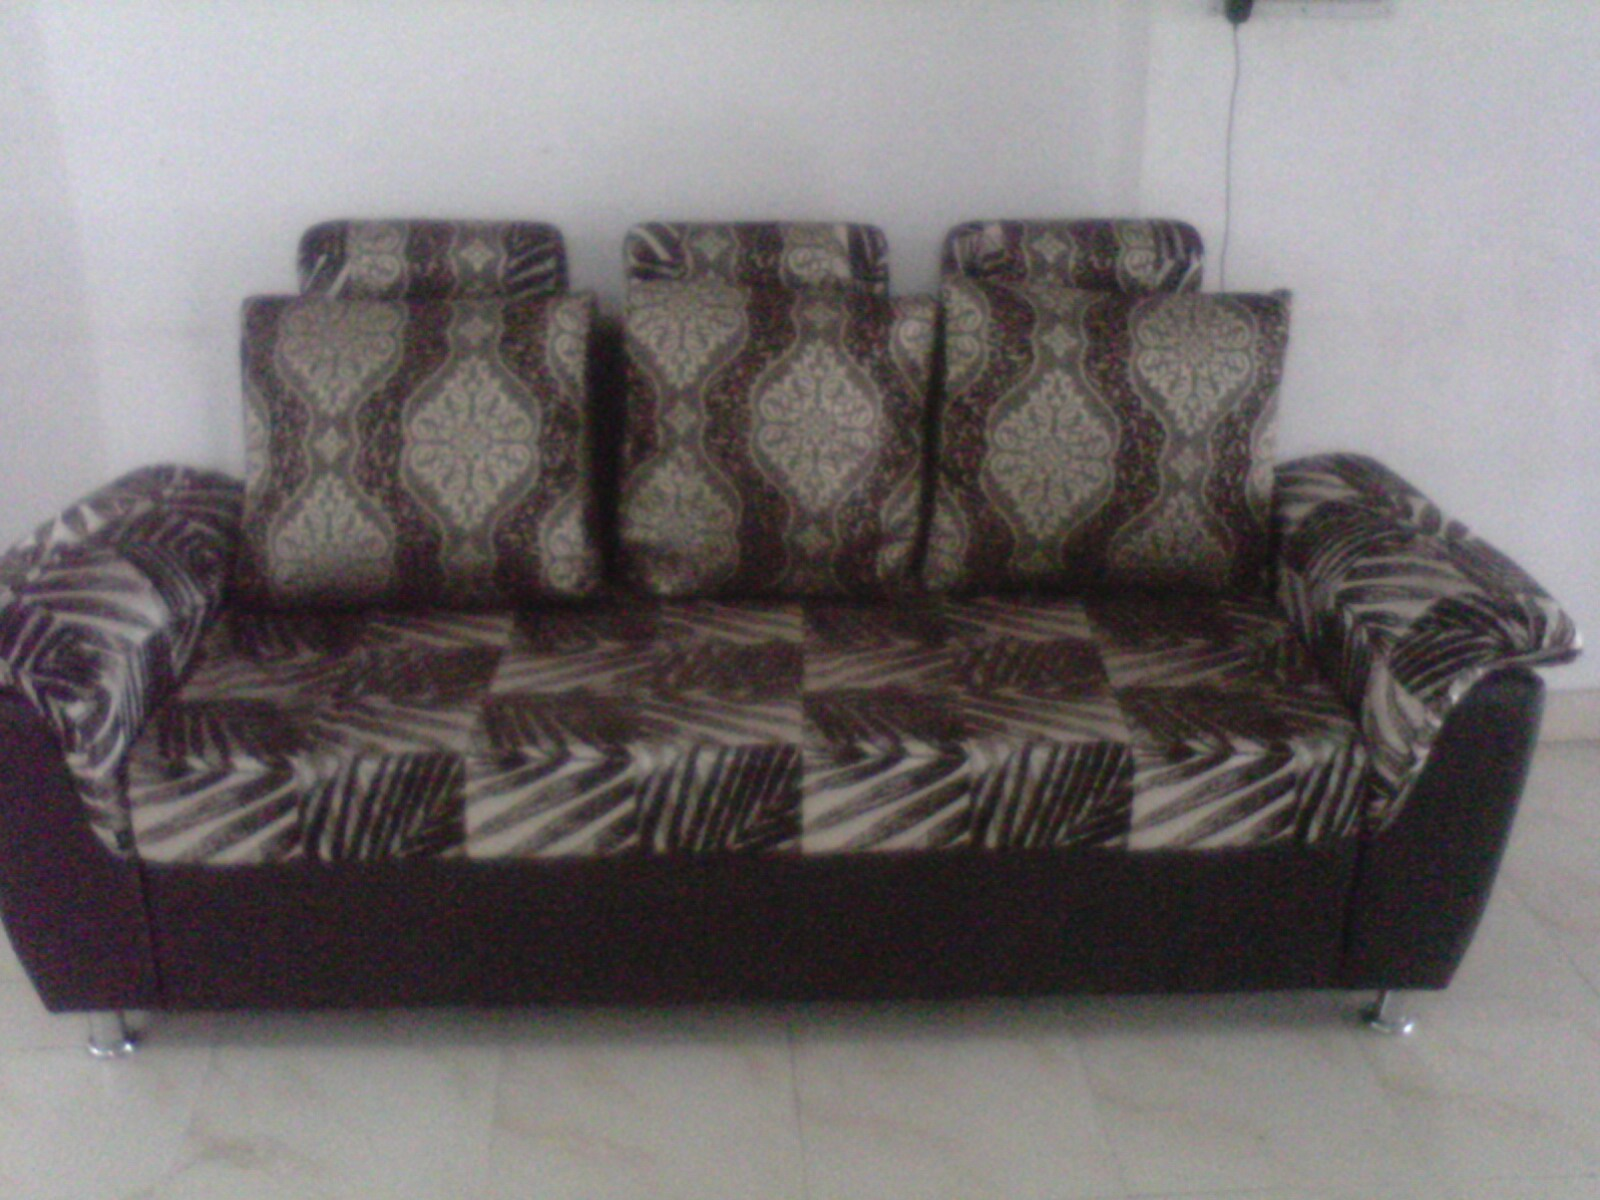 cane sofa cost in hyderabad corner beds for small rooms union furniture and secunderabad latest